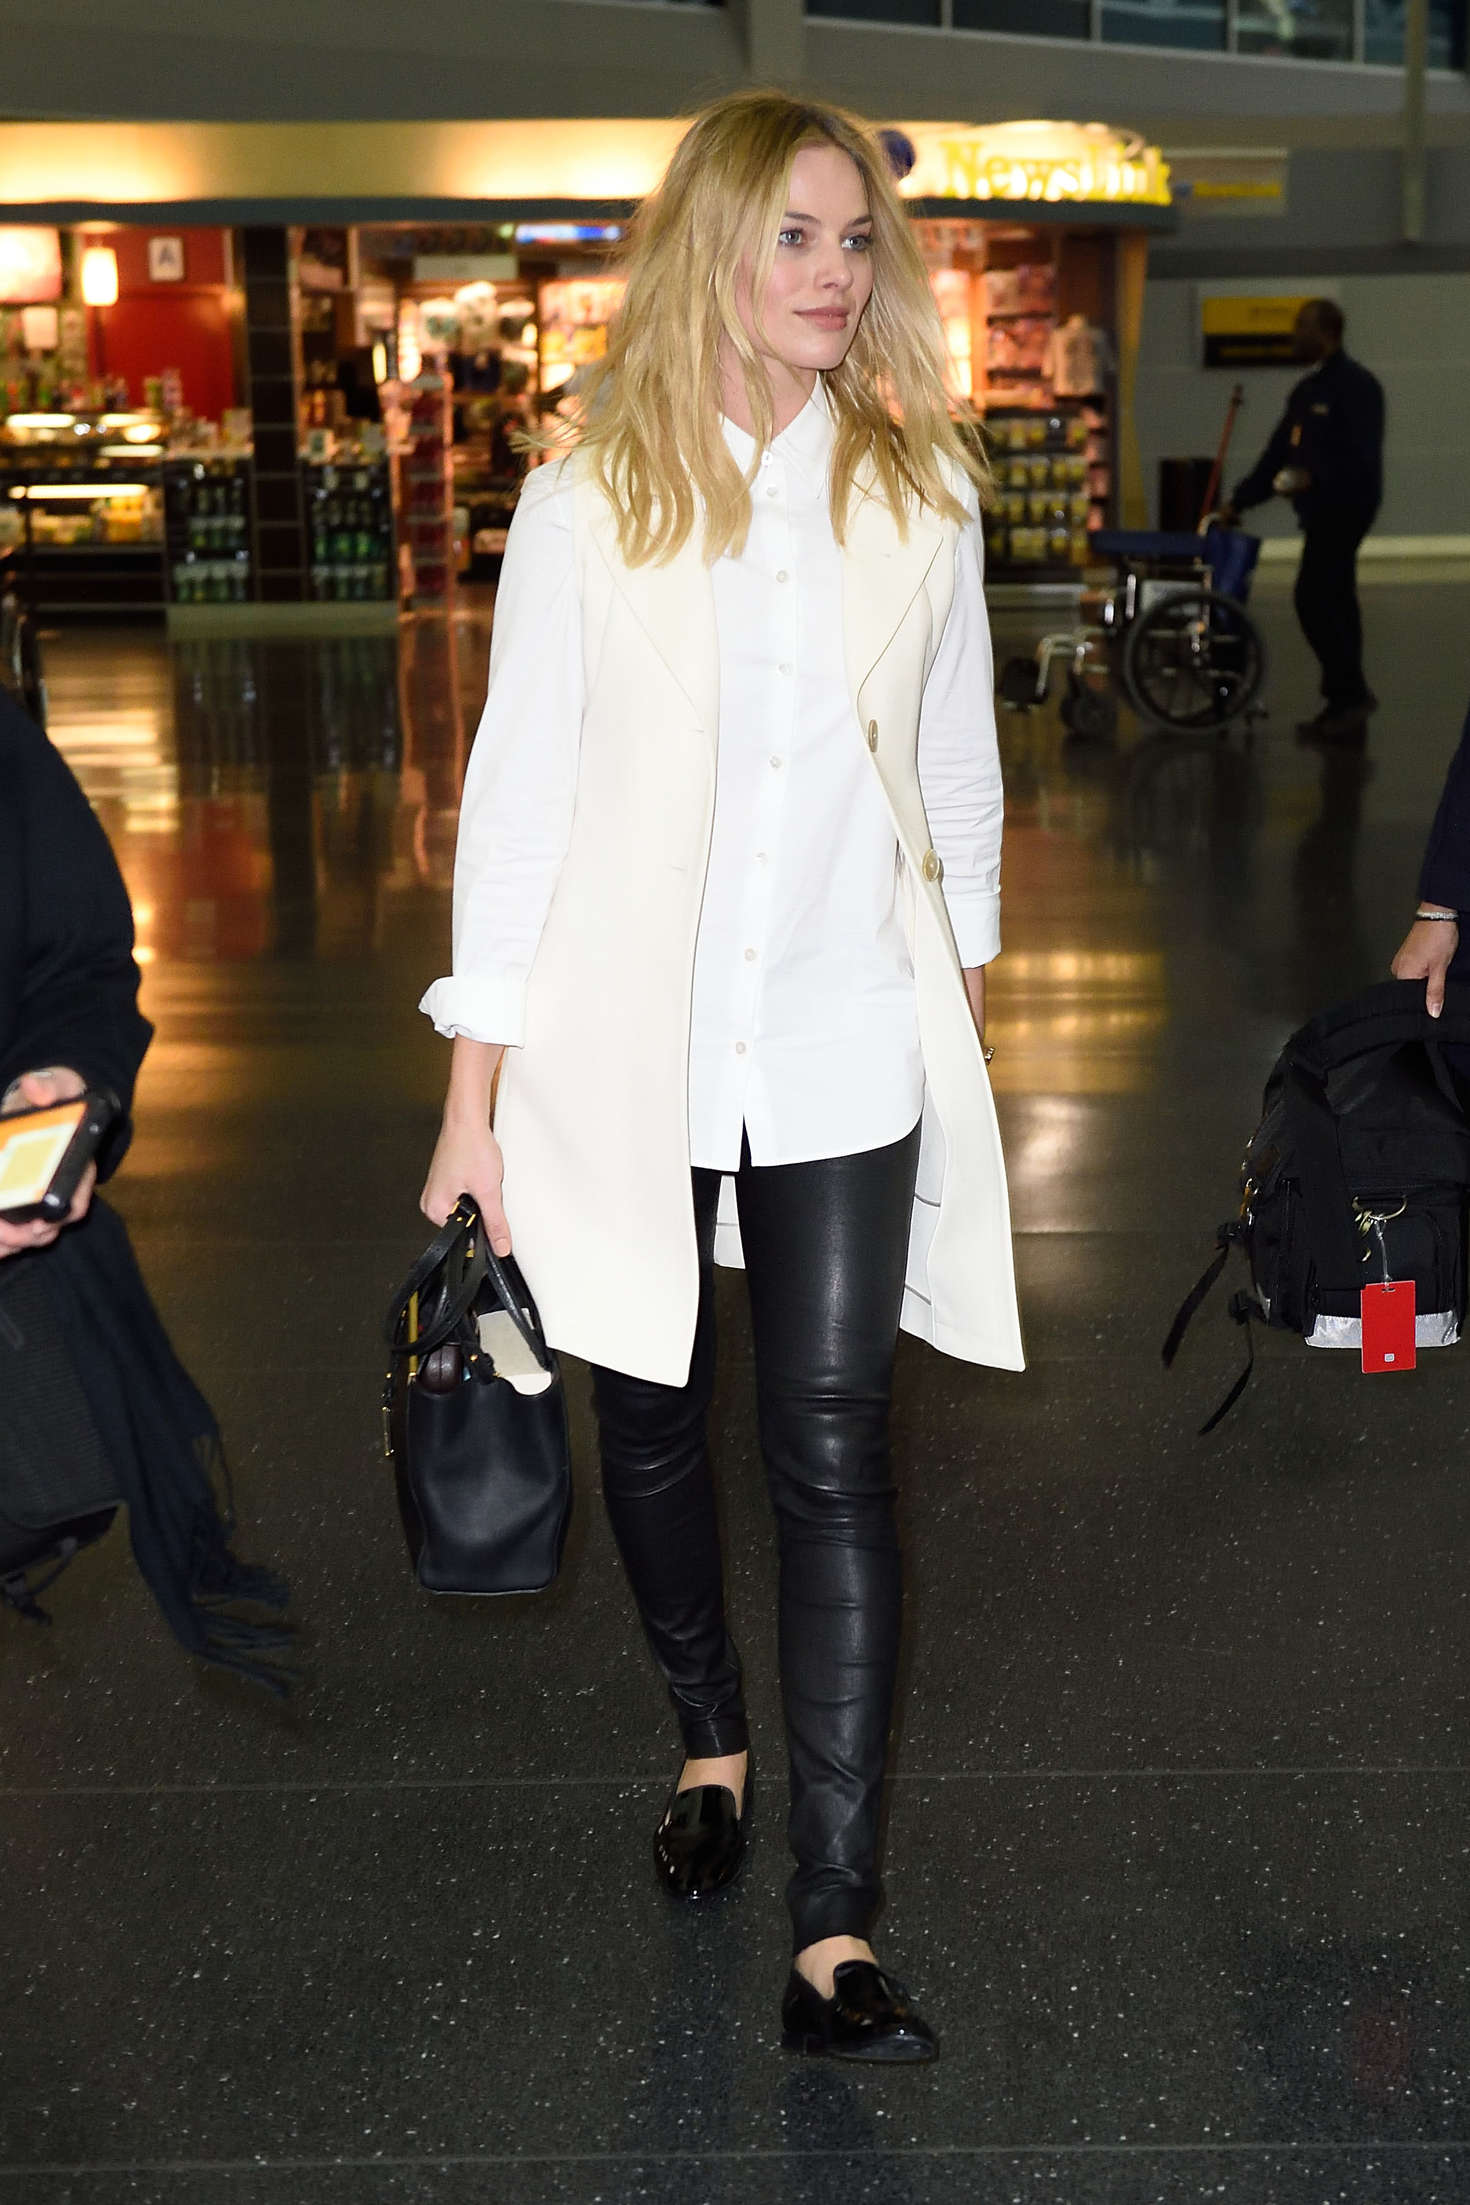 Margot Robbie in Leather Pants at JFK Airport -03 - GotCeleb Miley Cyrus